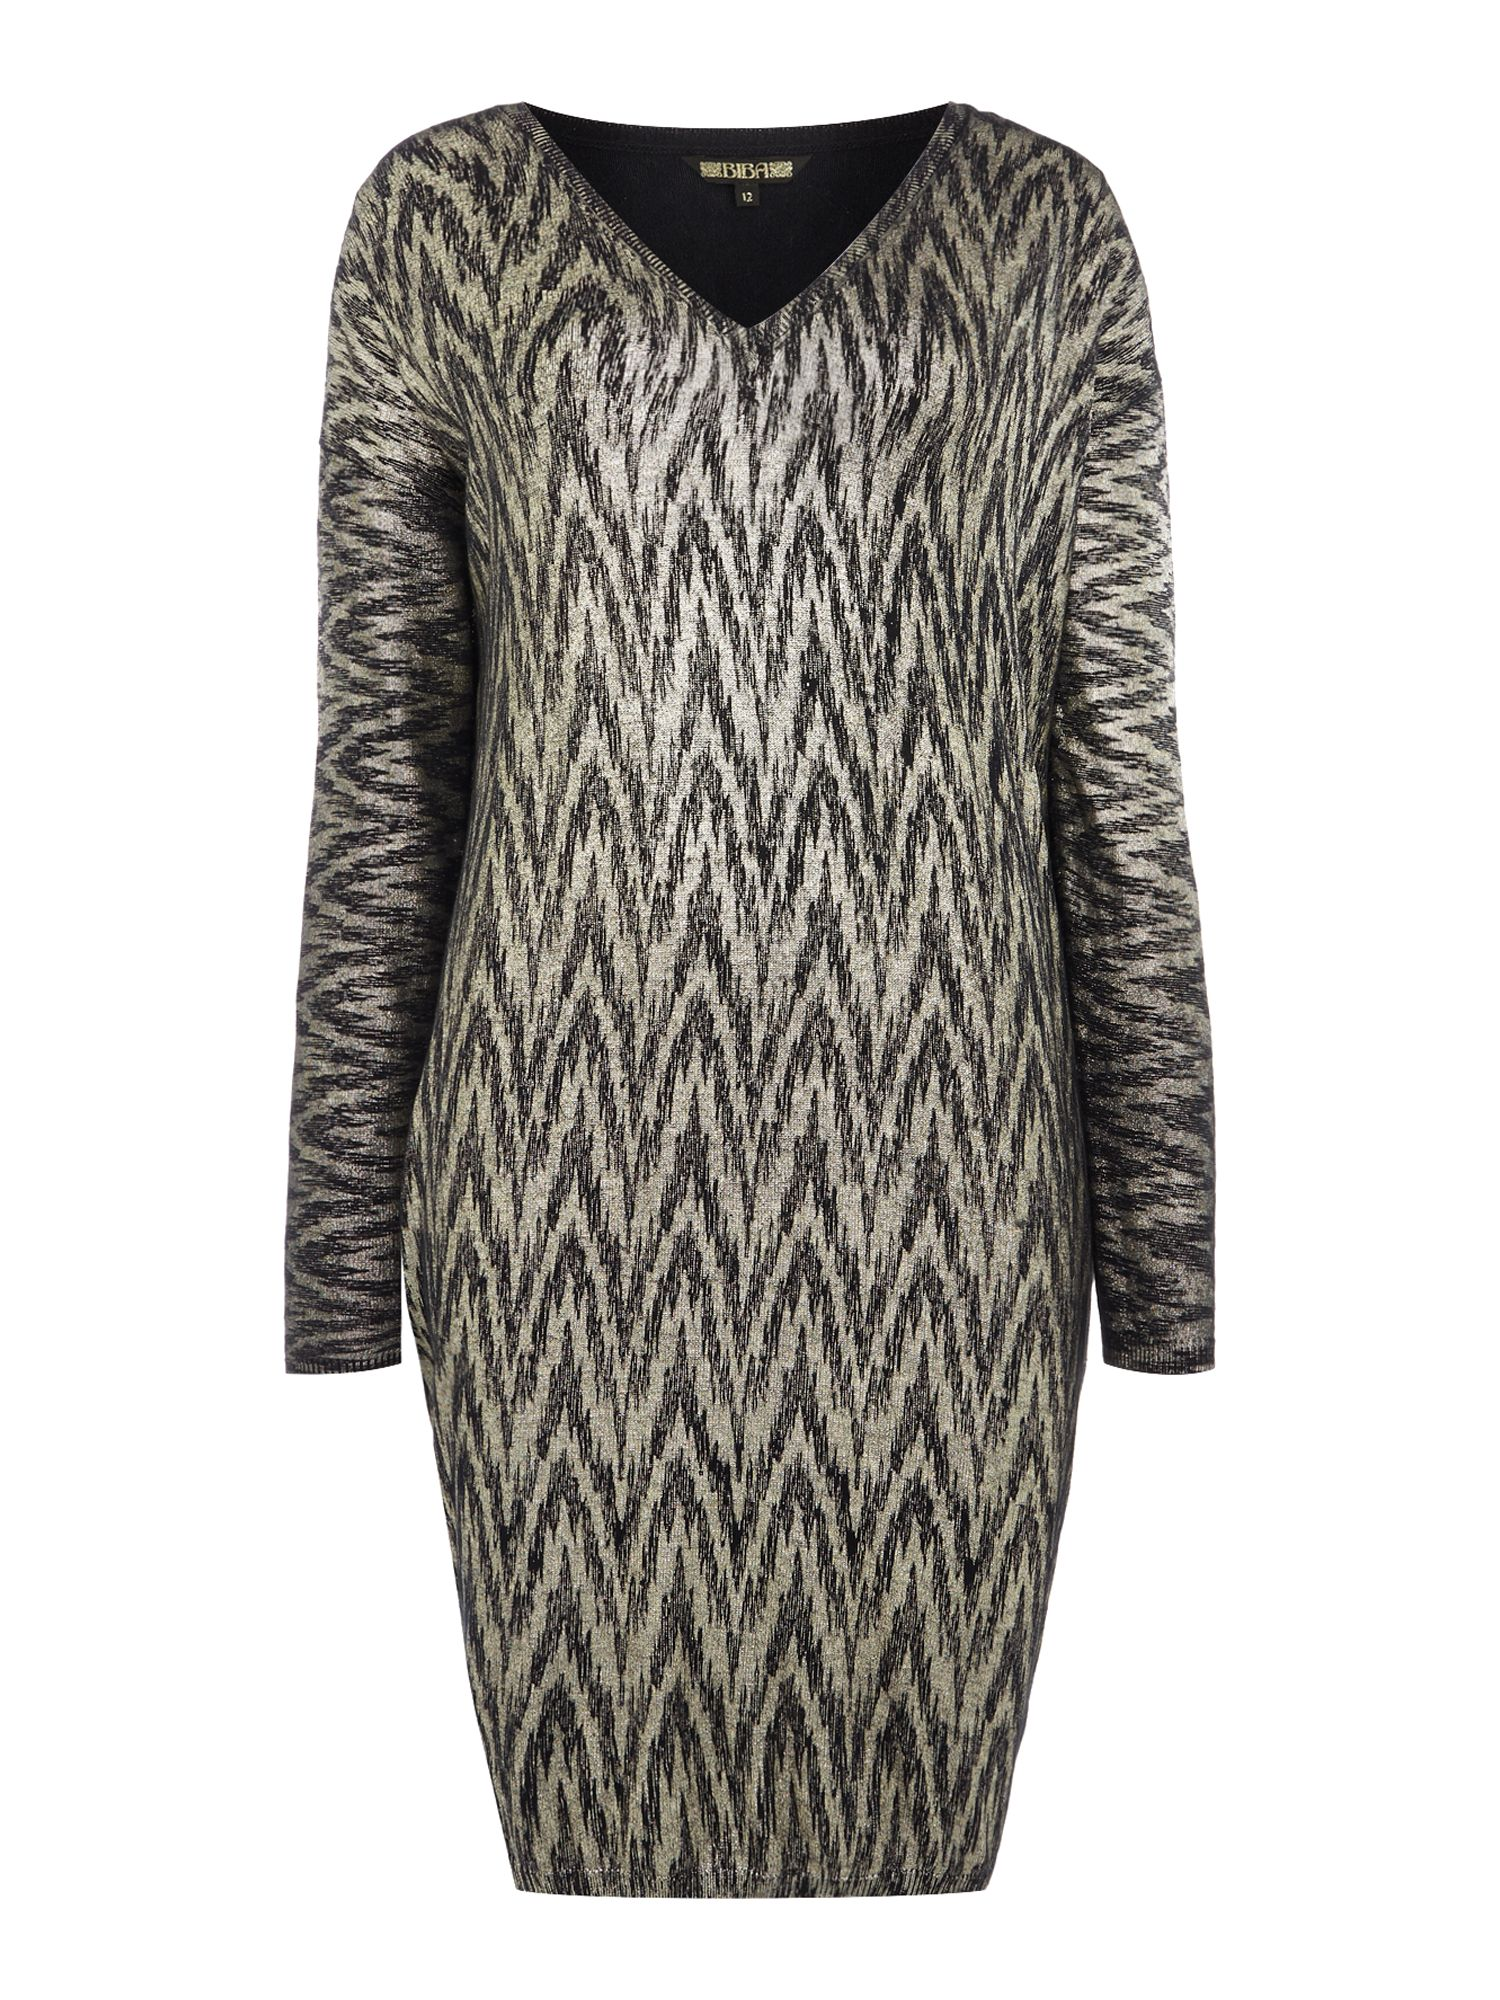 Biba Metallic printed vneck jumper dress MultiColoured